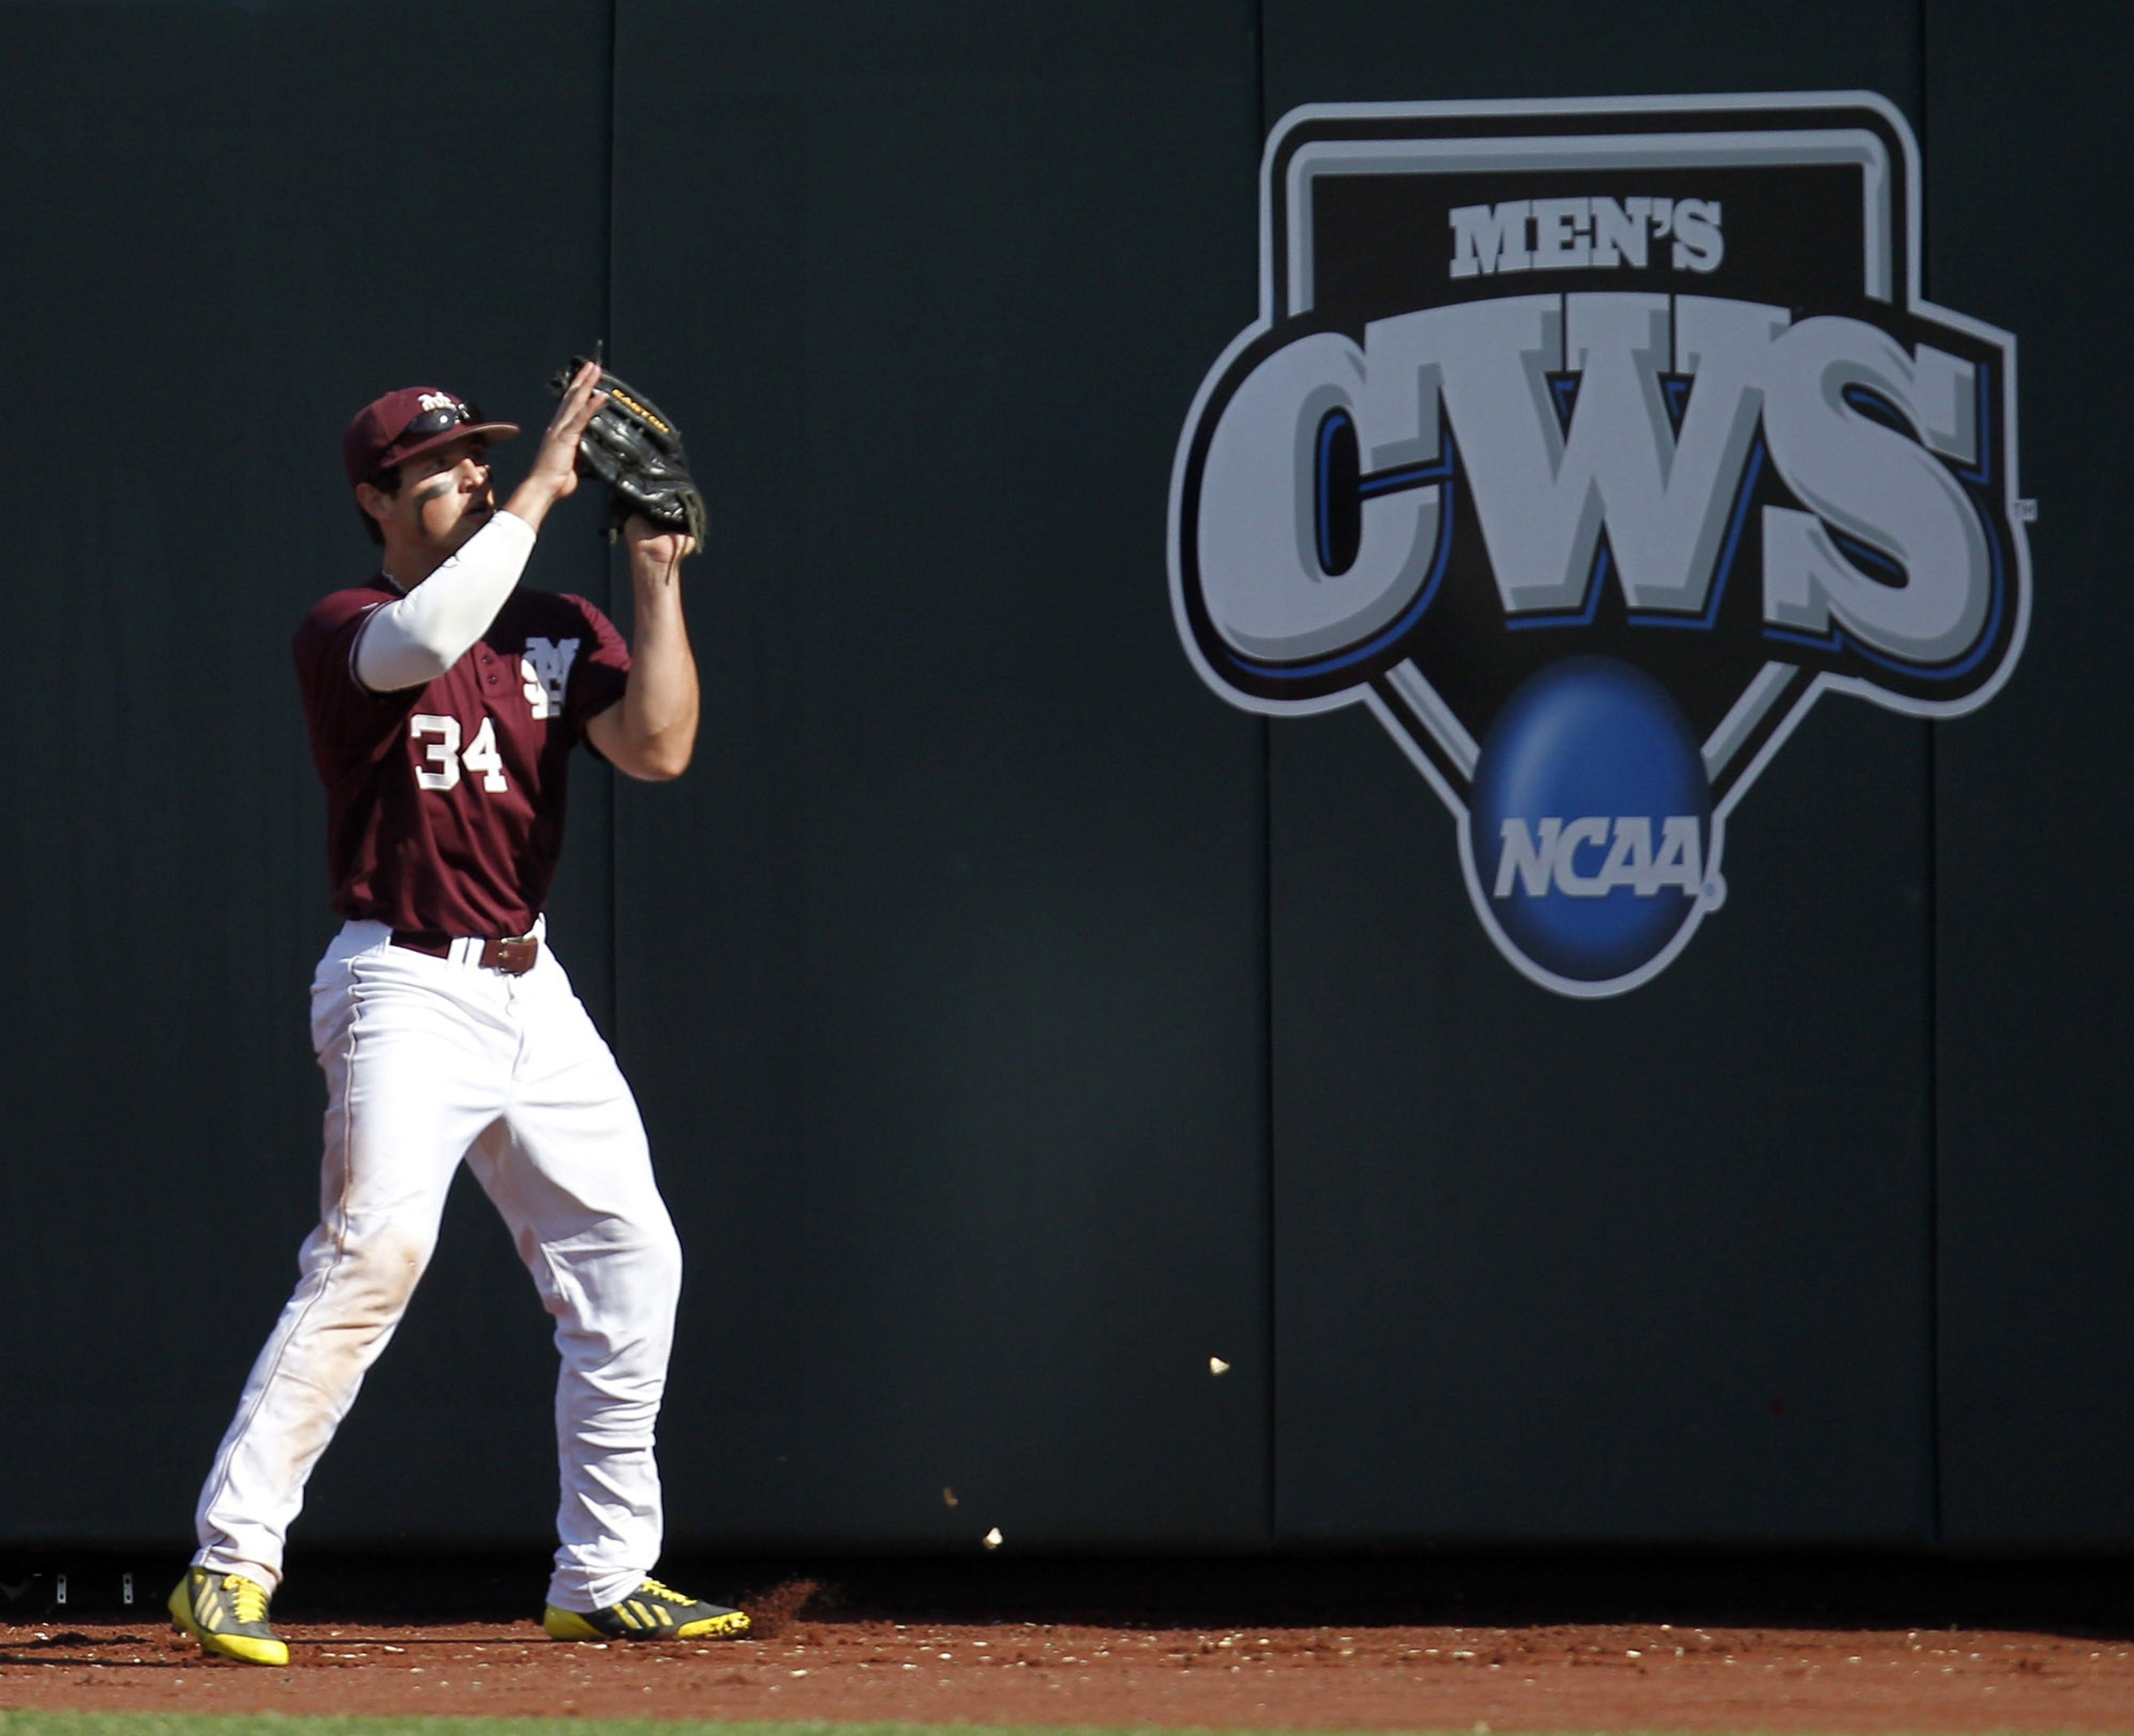 If the fences were in at Omaha, the CWS might be quite different for the Bulldogs.